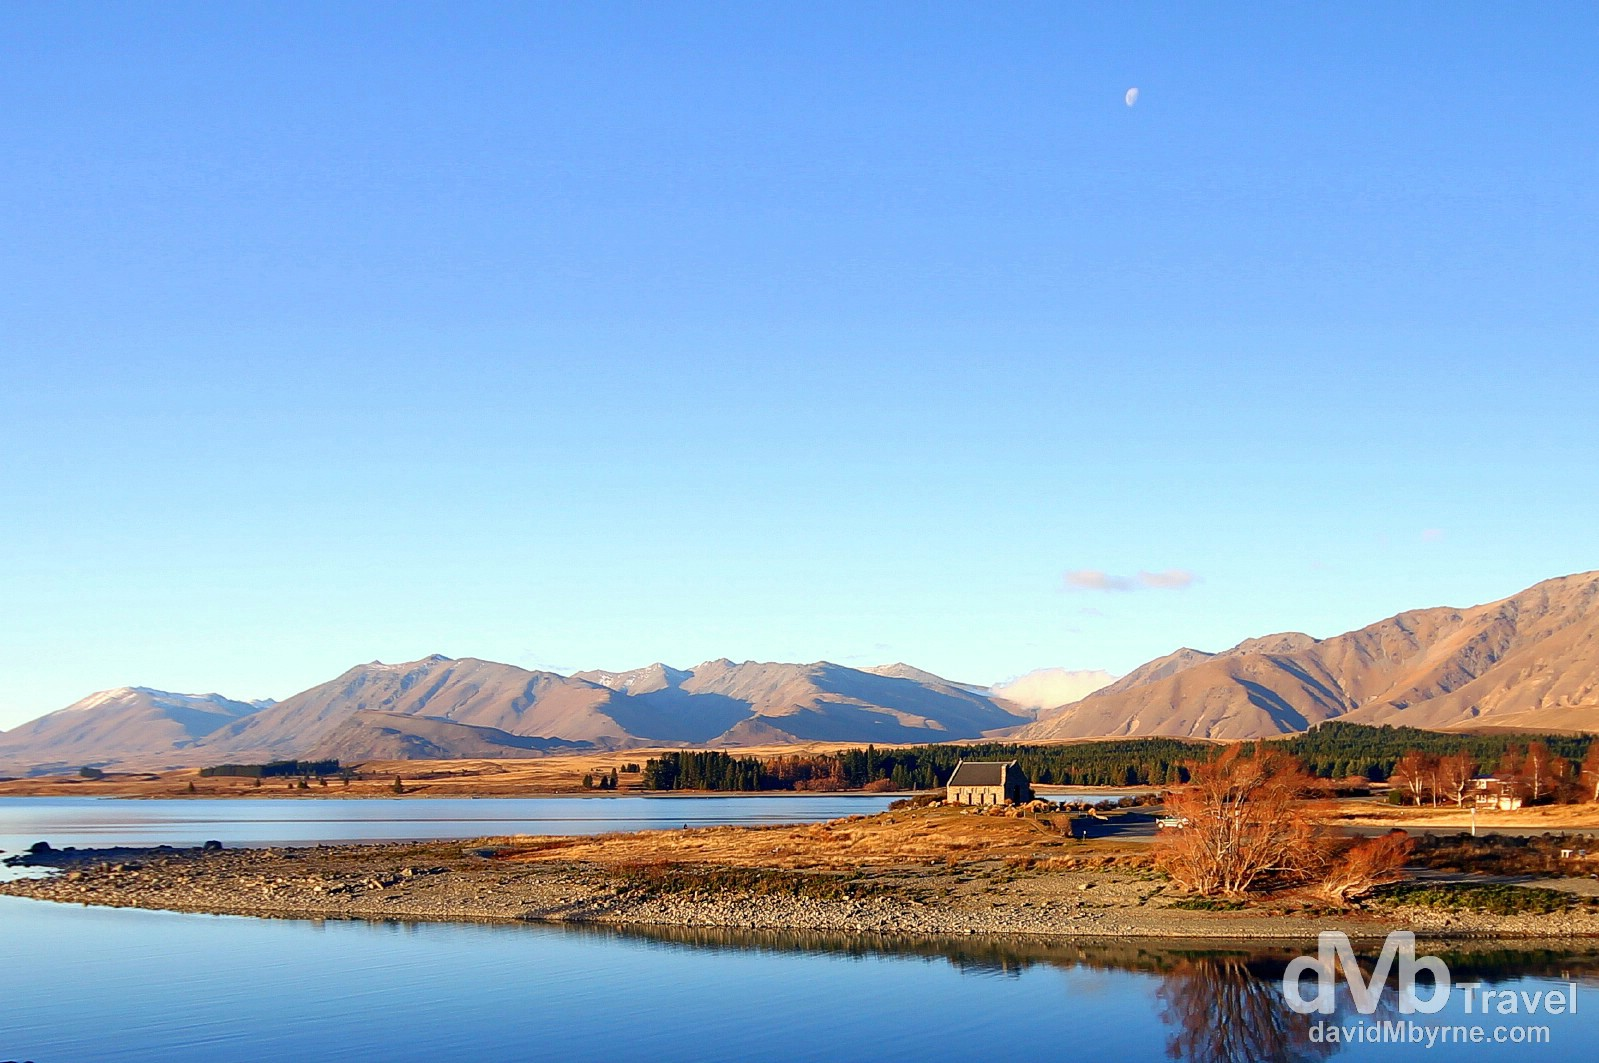 The Church of The Good Shepherd bathed in late afternoon sunlight on the shores of Lake Tekapo, South Island, New Zealand. May 31st 2012.